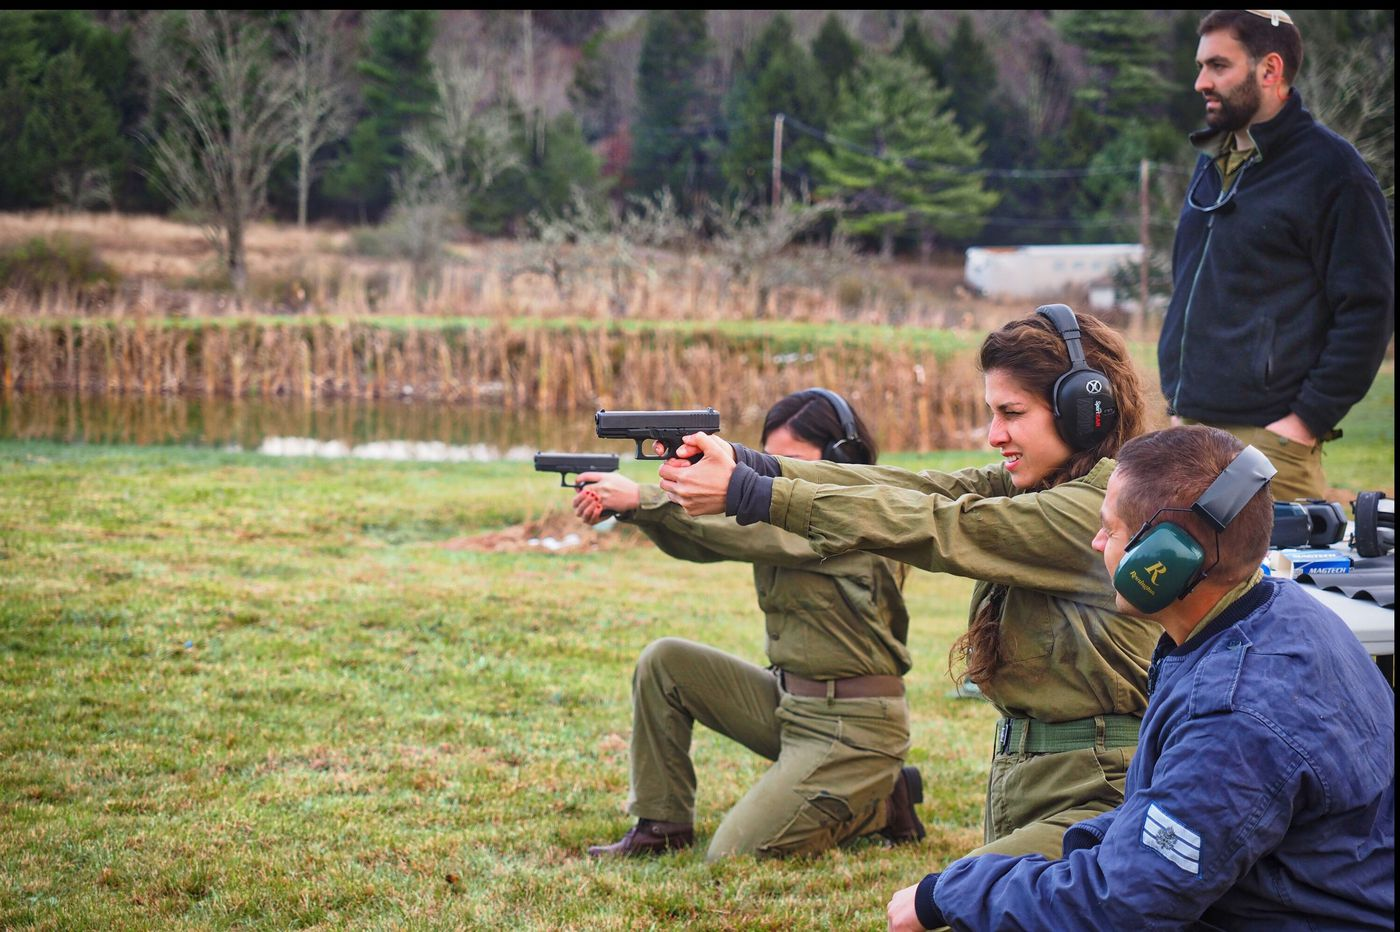 Why Philly Jews are arming themselves: 'I'm going to go down fighting'